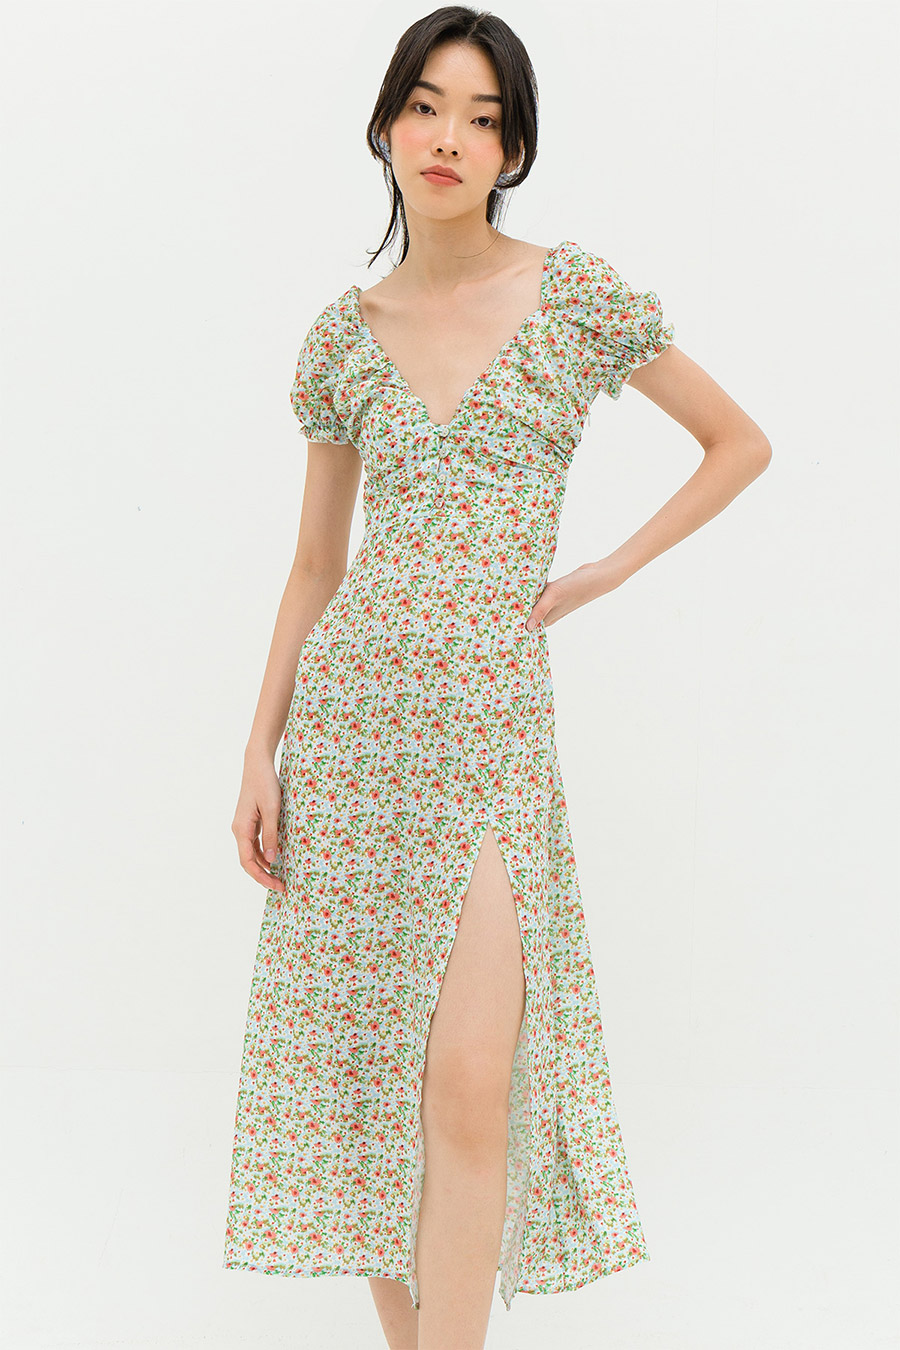 *BO* GALATEA DRESS - MORNING GLORY